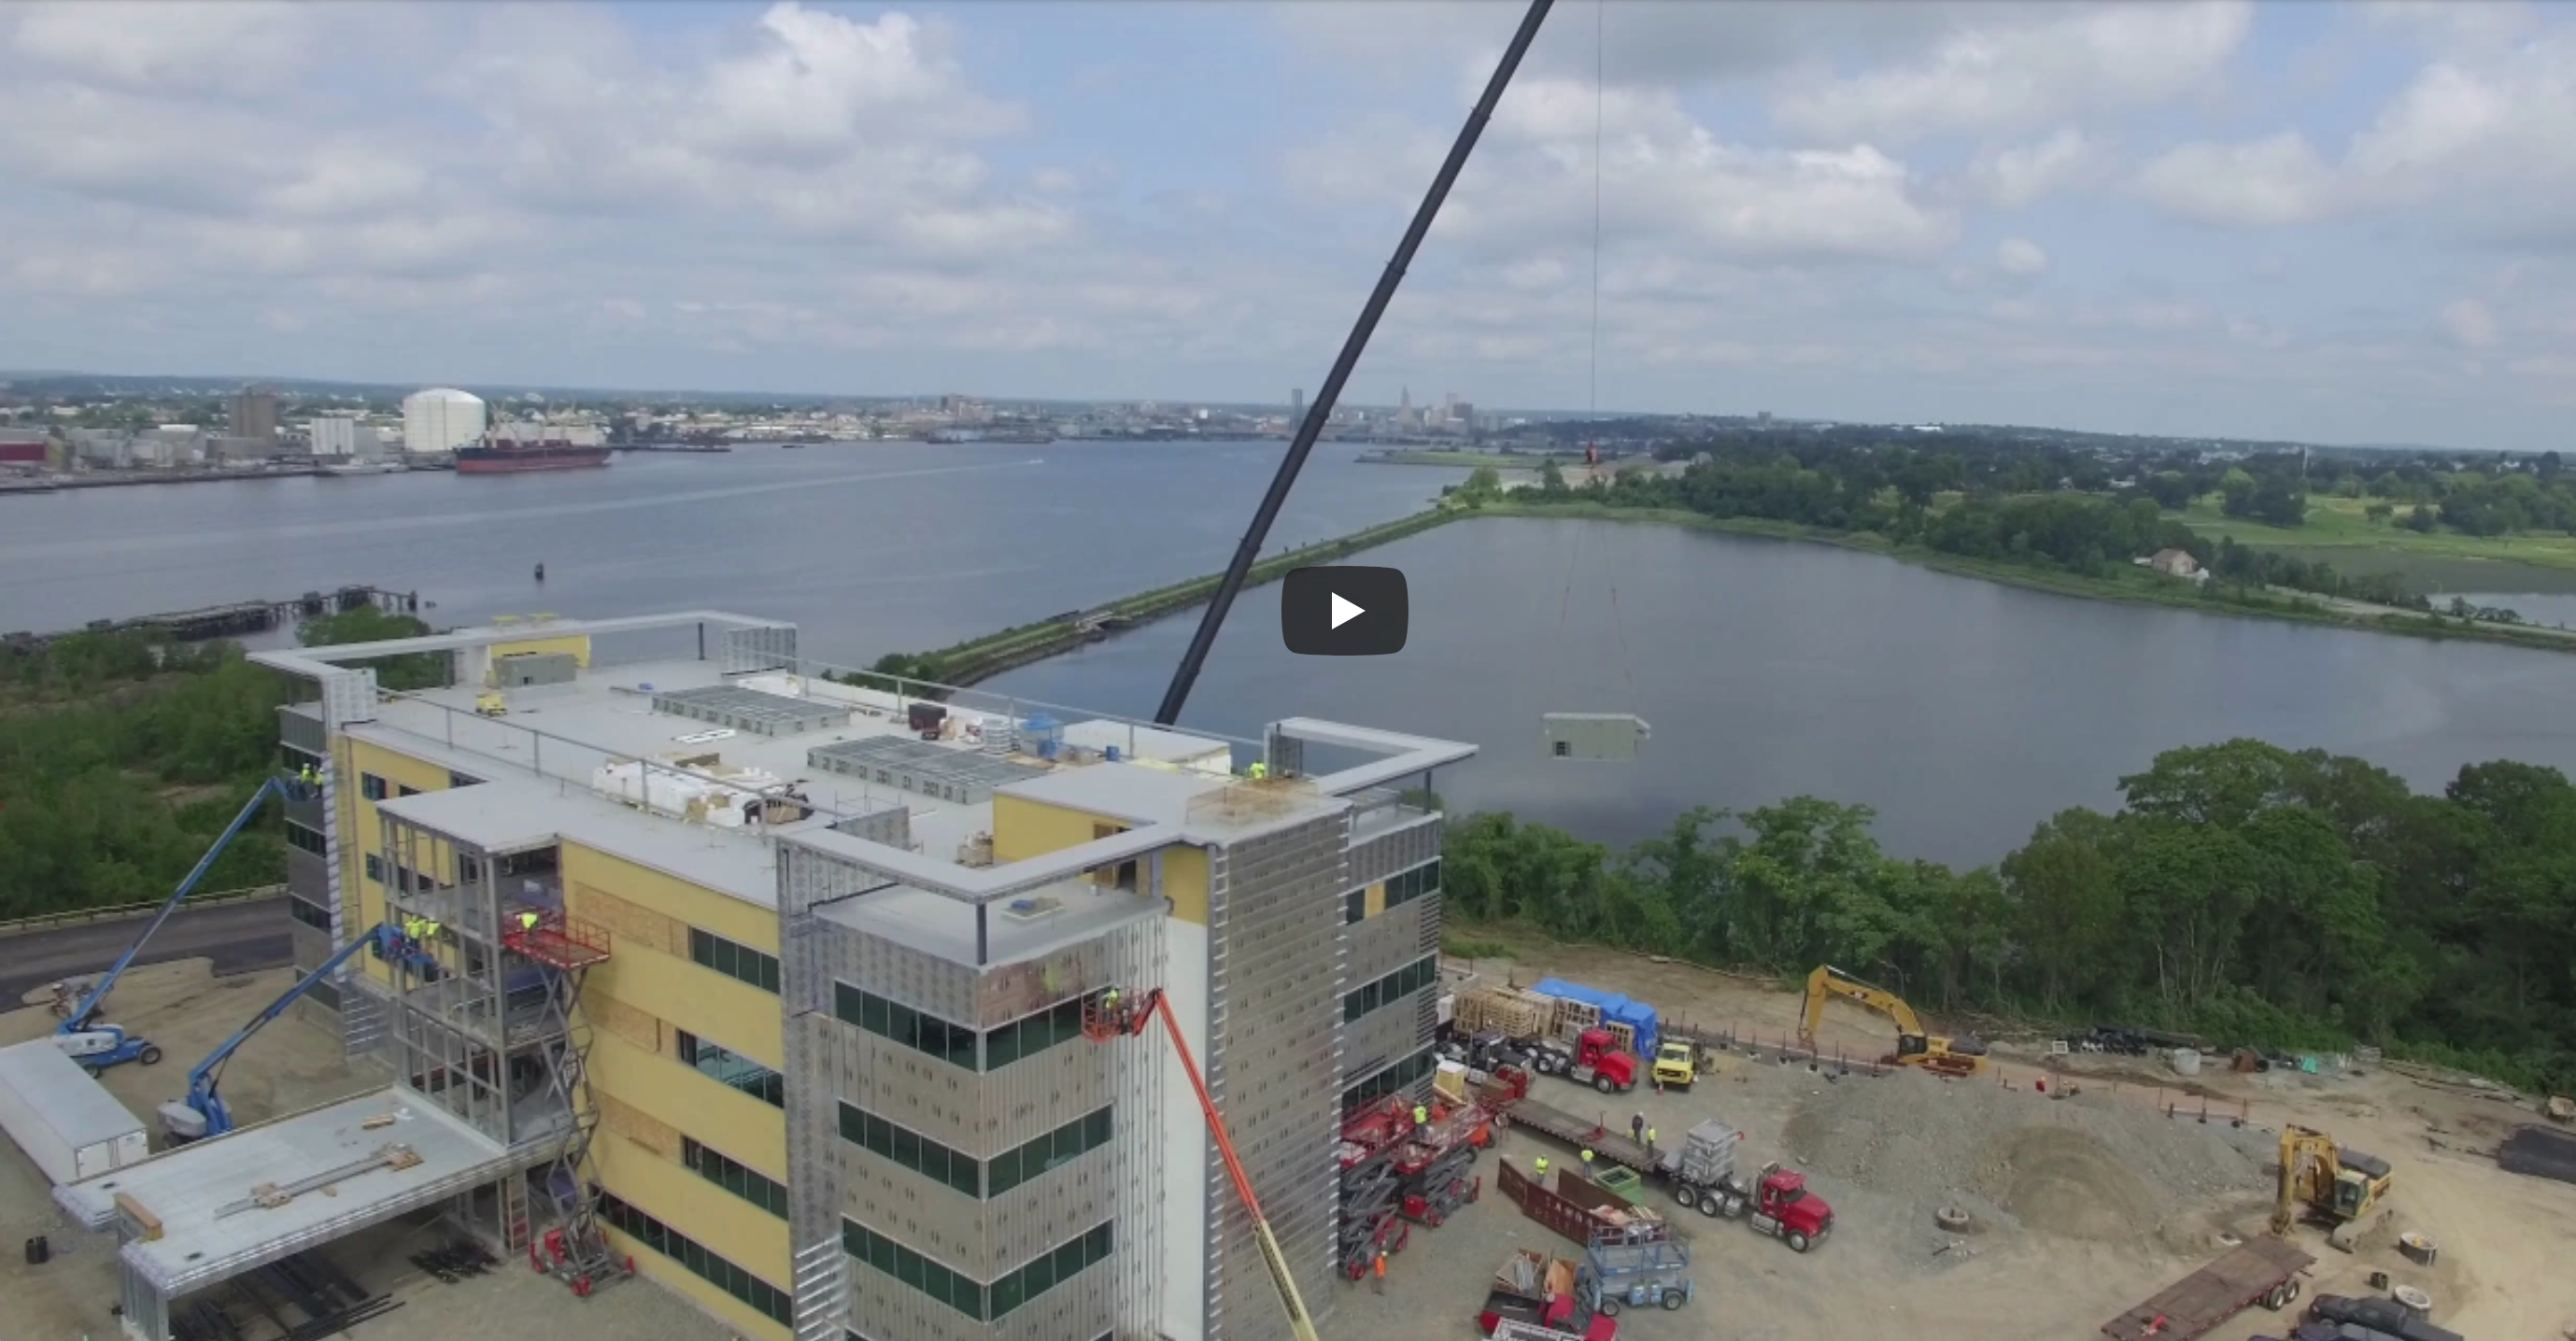 University Orthopedics Progress – Drone Video